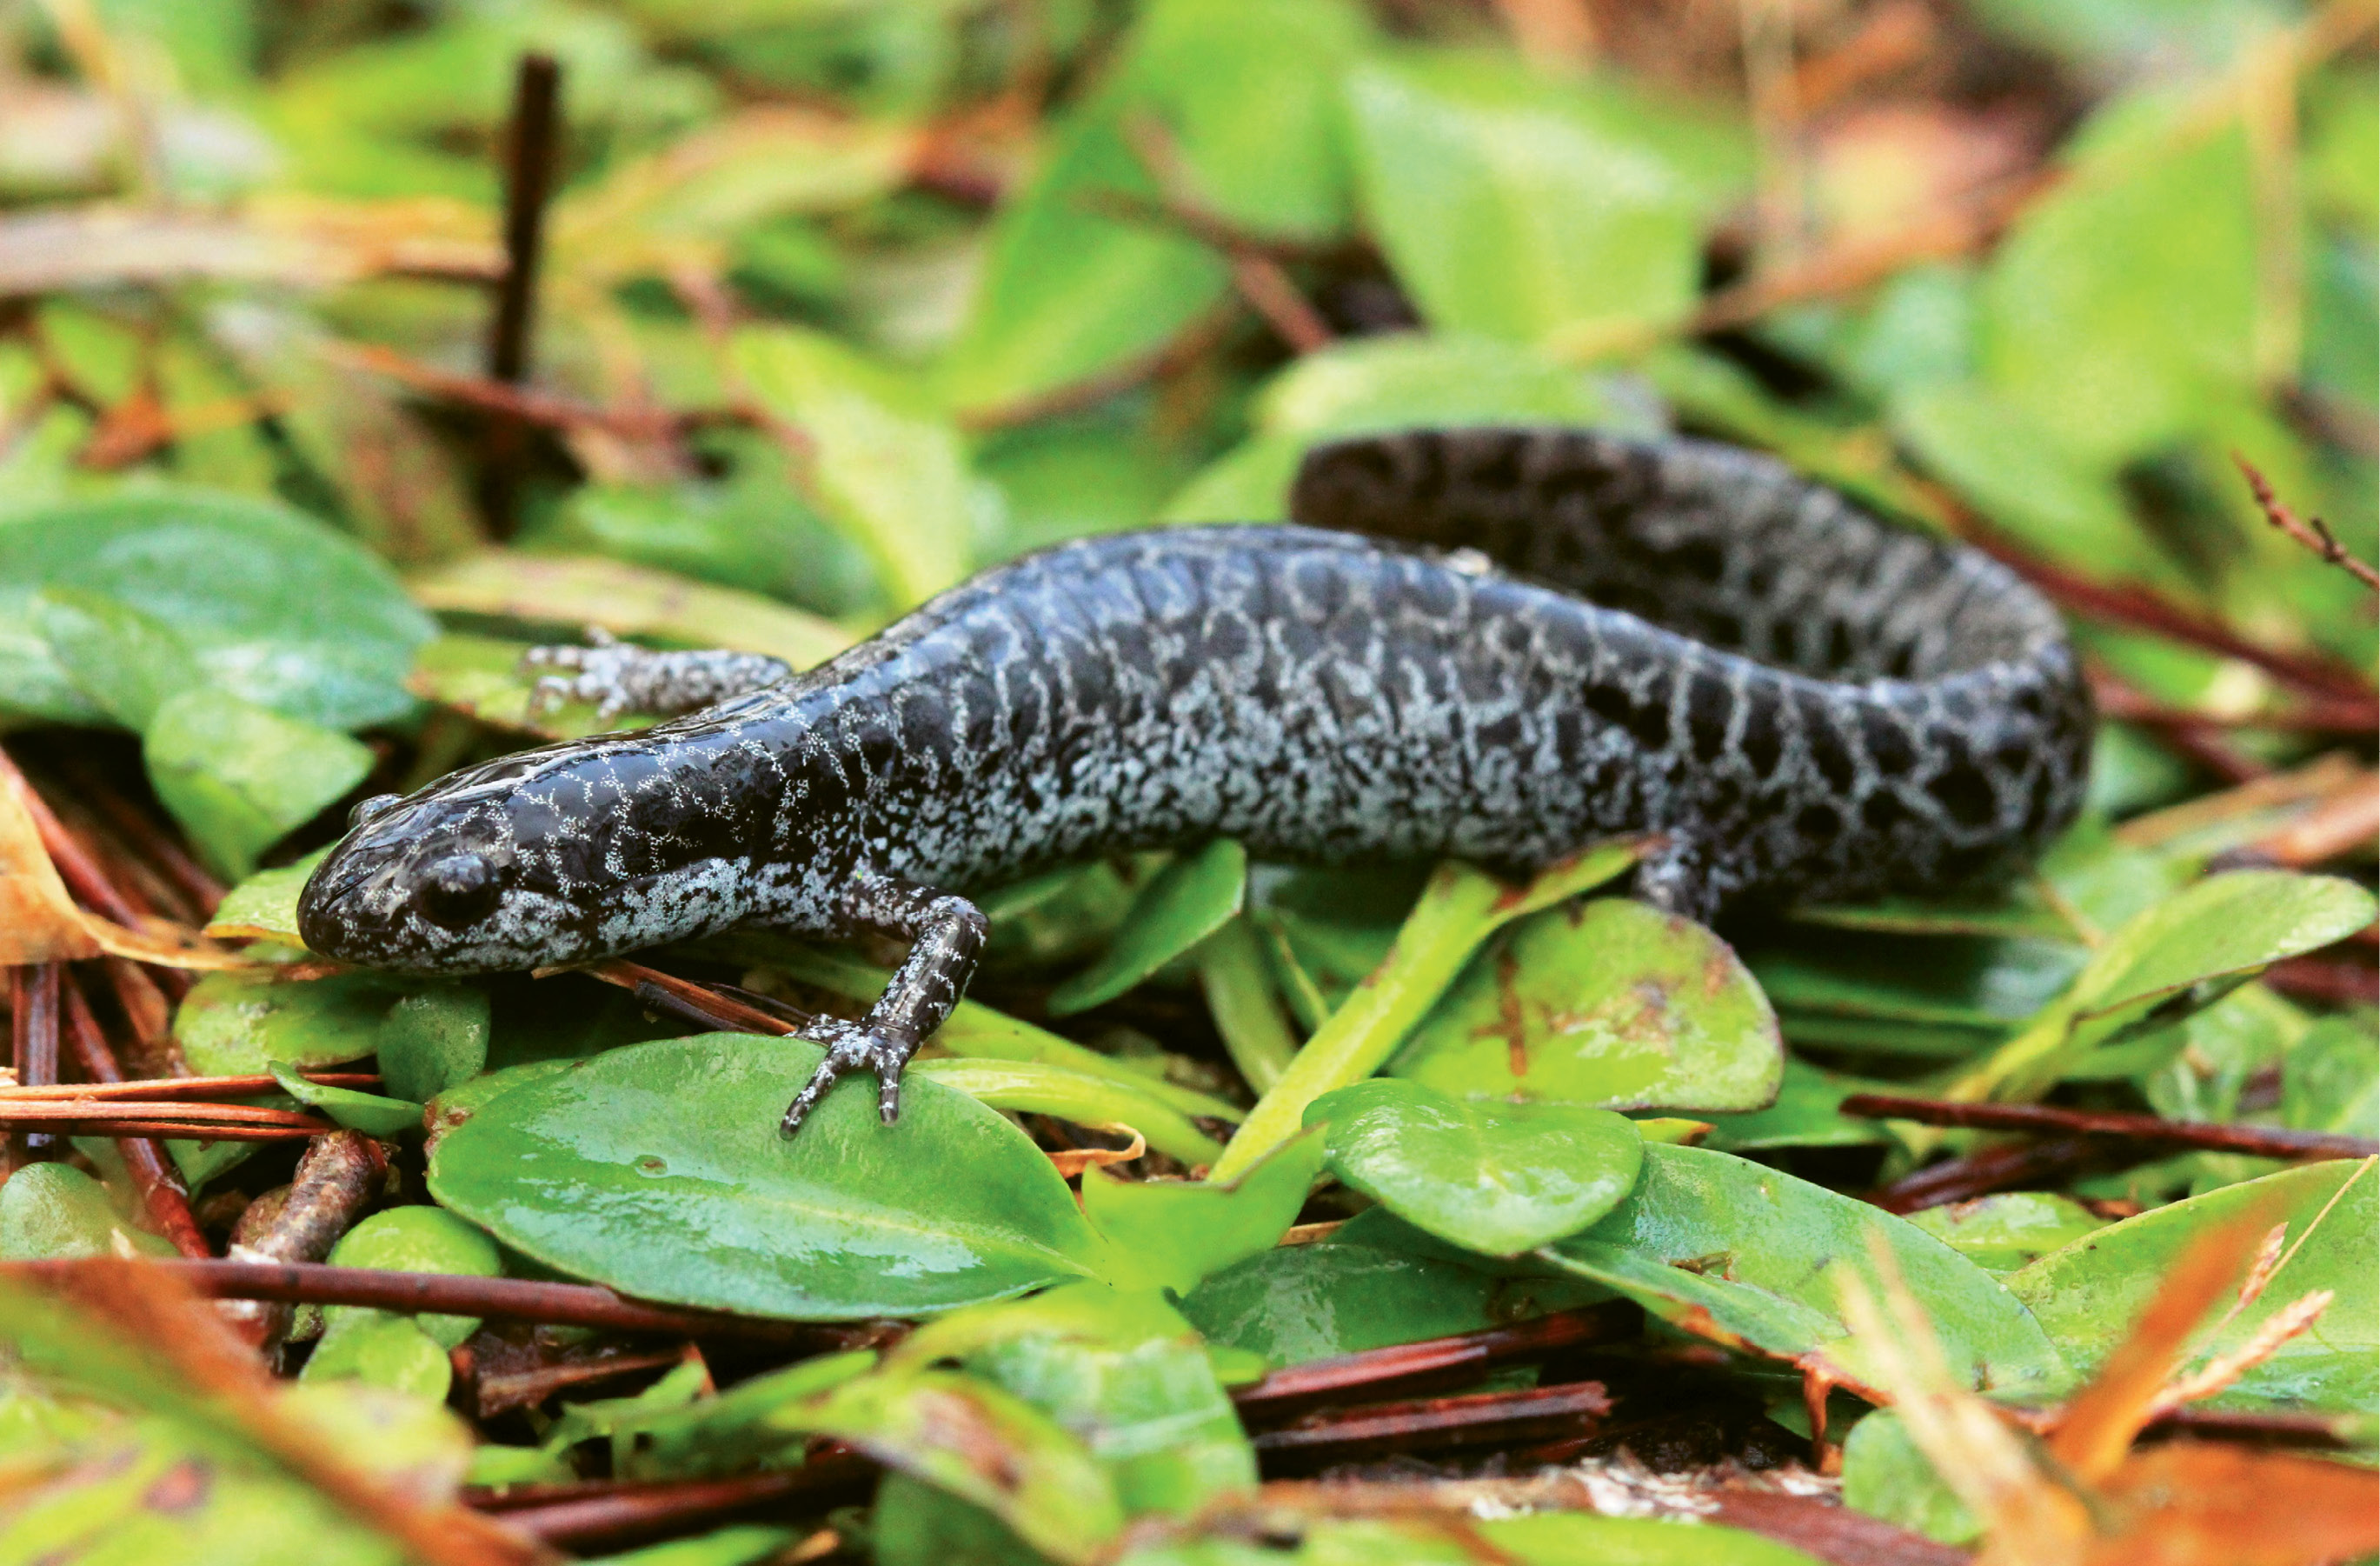 Frosted Flatwoods Salamander (Ambystoma cingulatum) - Destruction of habitat due to logging and development is the primary threat to these endangered amphibians.